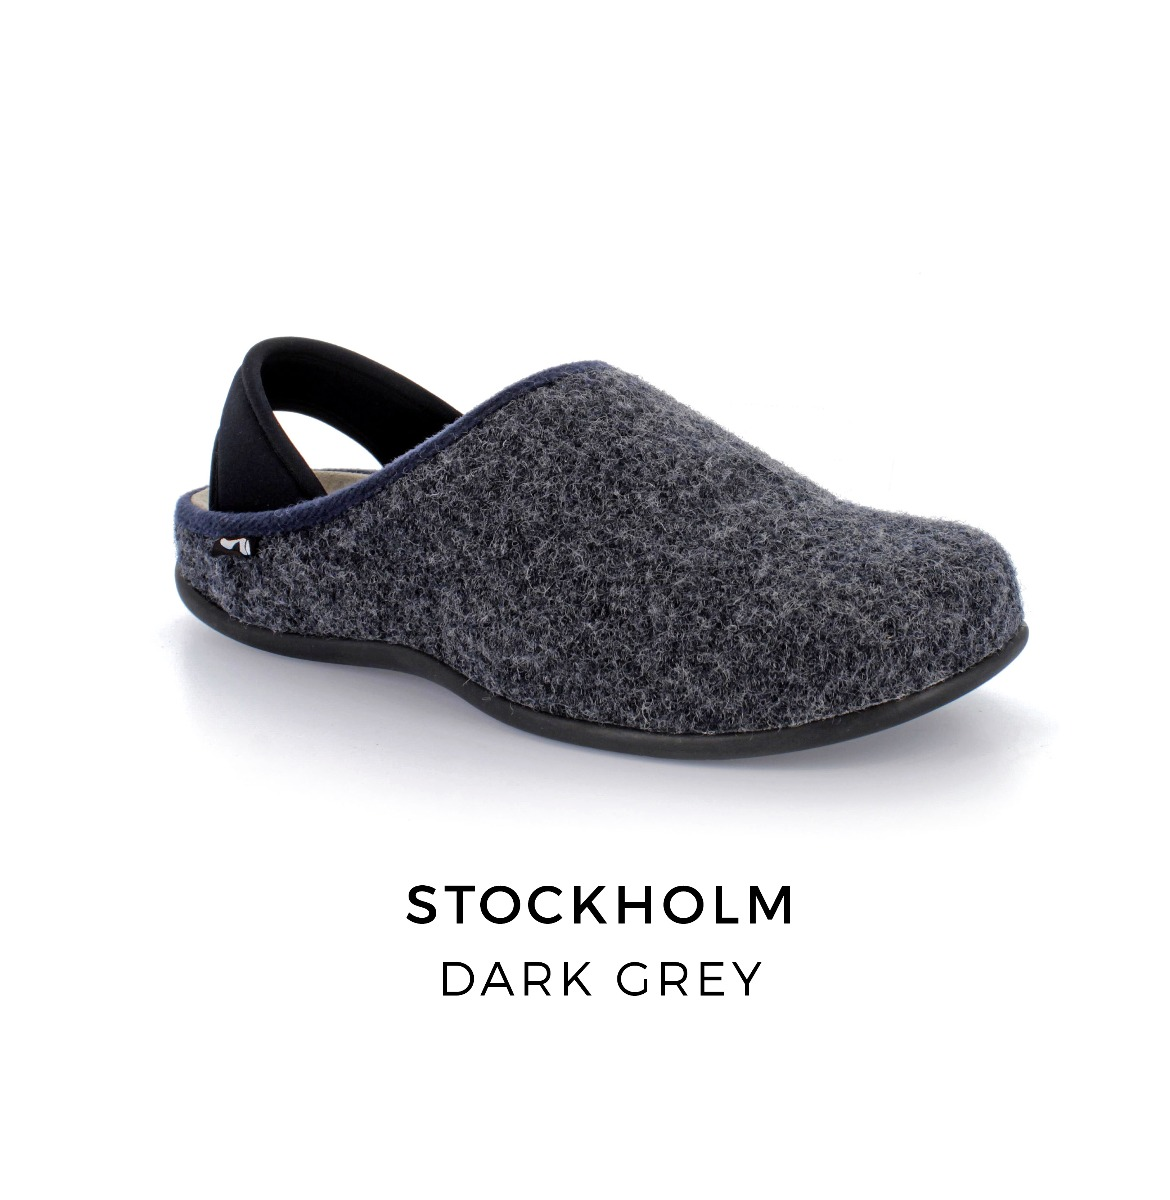 Stockholm orthotic slippers with arch support